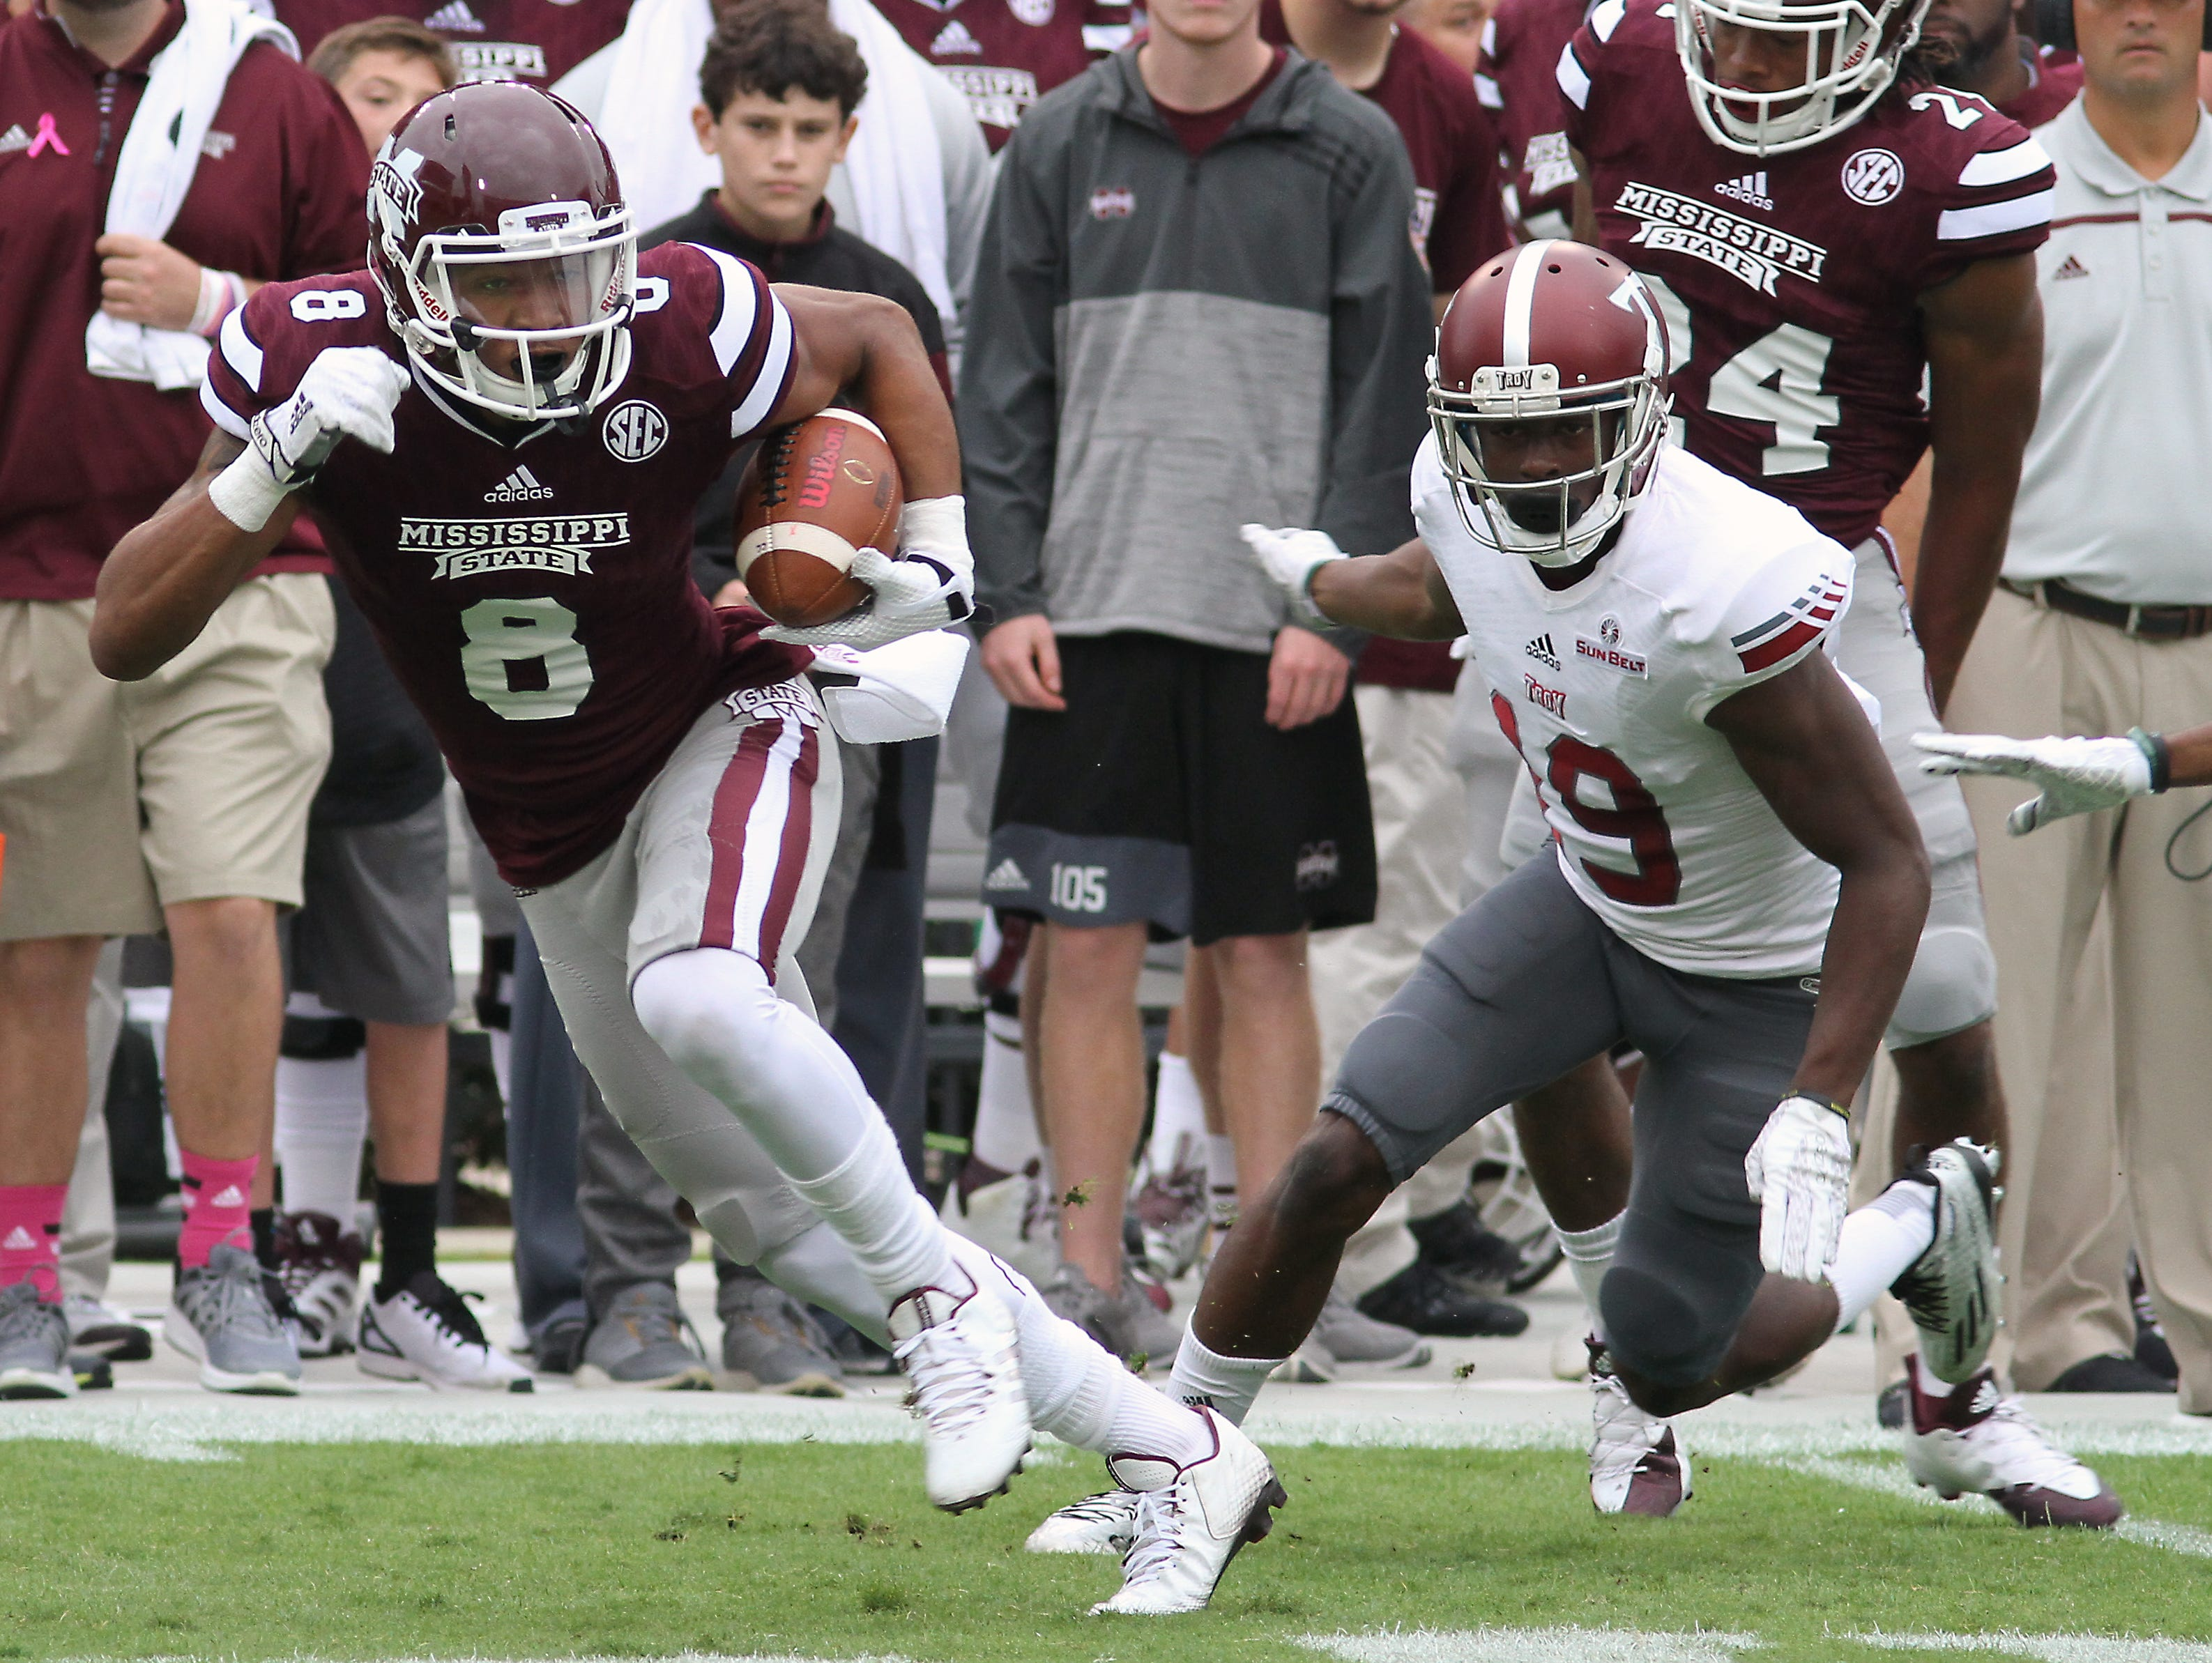 Mississippi State wide receiver Fred Ross (8) runs from Troy cornerback Jalen Harris (19) and for the end zone during the first half of an NCAA college football game in Starkville, Miss., Saturday, Oct. 10, 2015. (AP Photo/Jim Lytle)